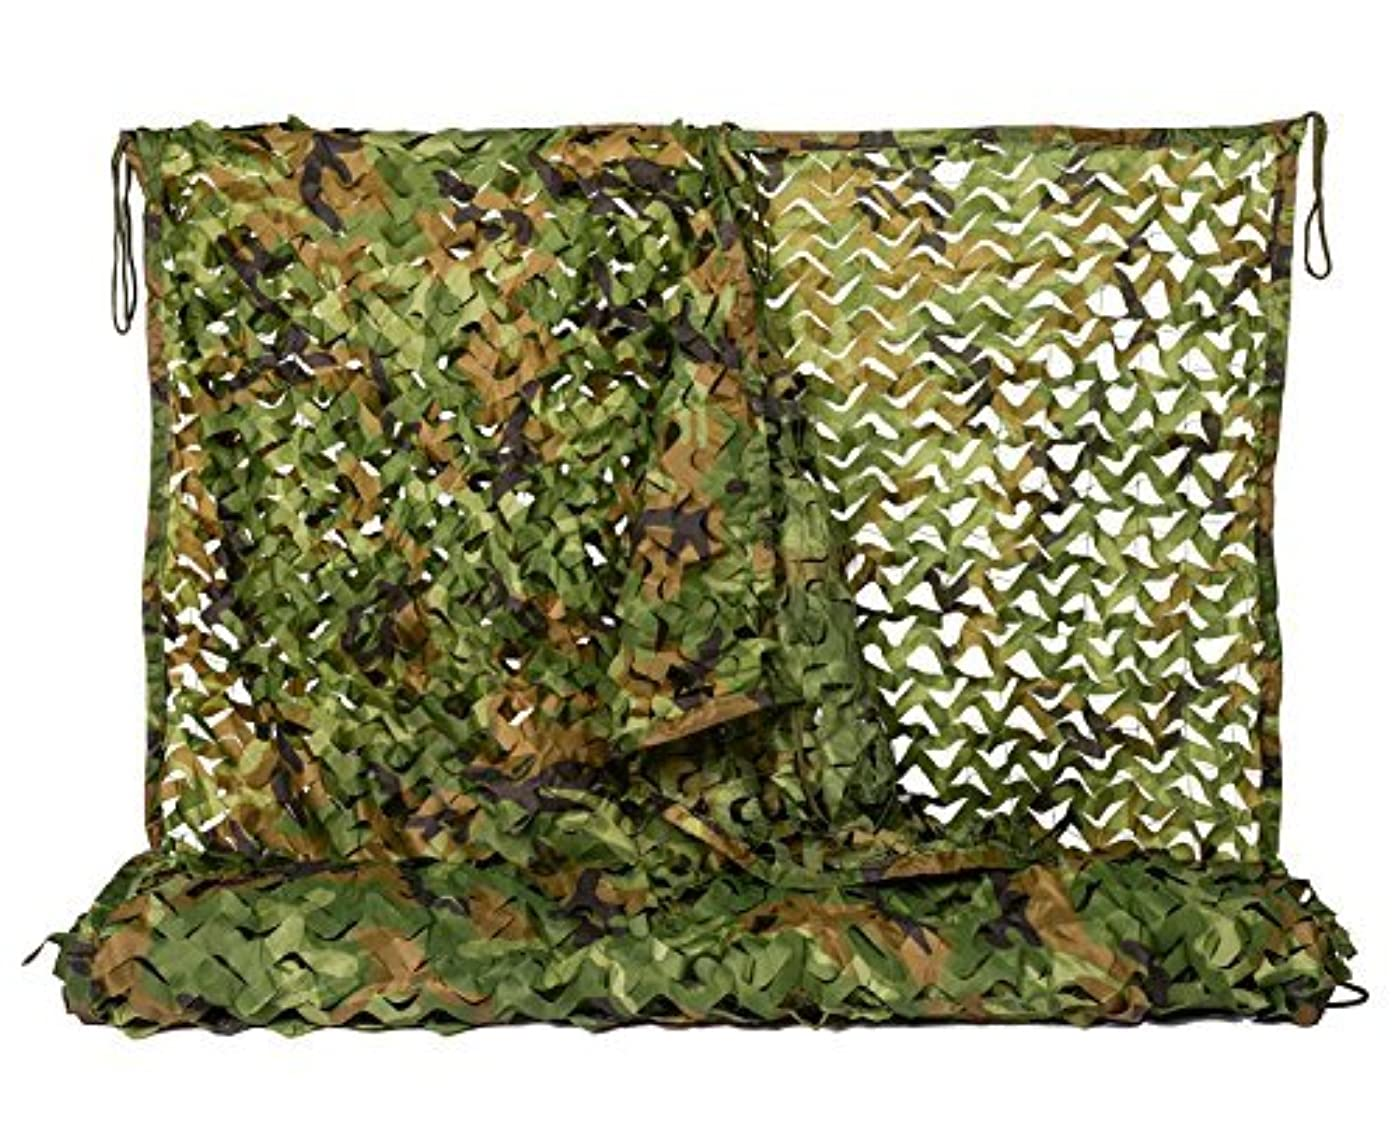 プロフェッショナル勝利した浮くNINAT Camo Netting 5x13ft Woodland Camouflage Net for Camping Military Hunting Shooting Sunscreen Nets [並行輸入品]